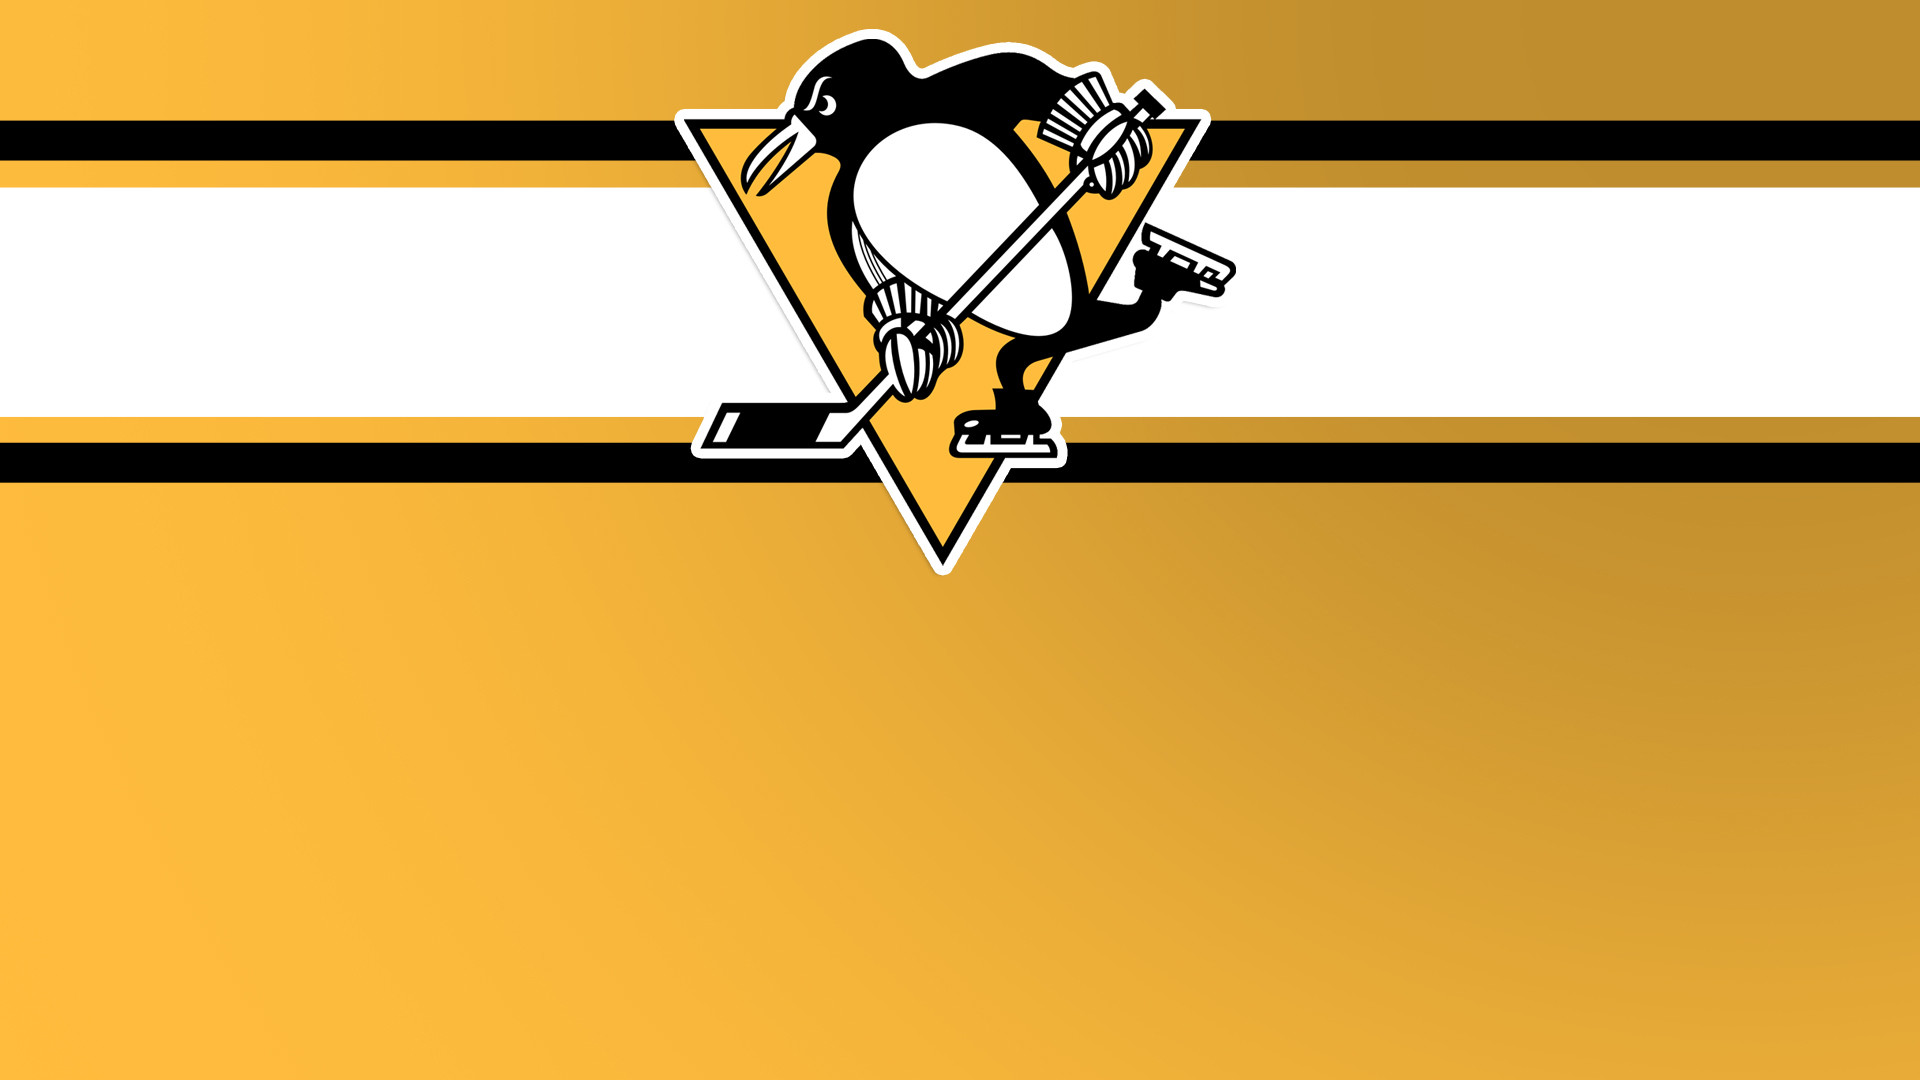 1920x1080 wallpaper for computer pittsburgh penguins Free Download